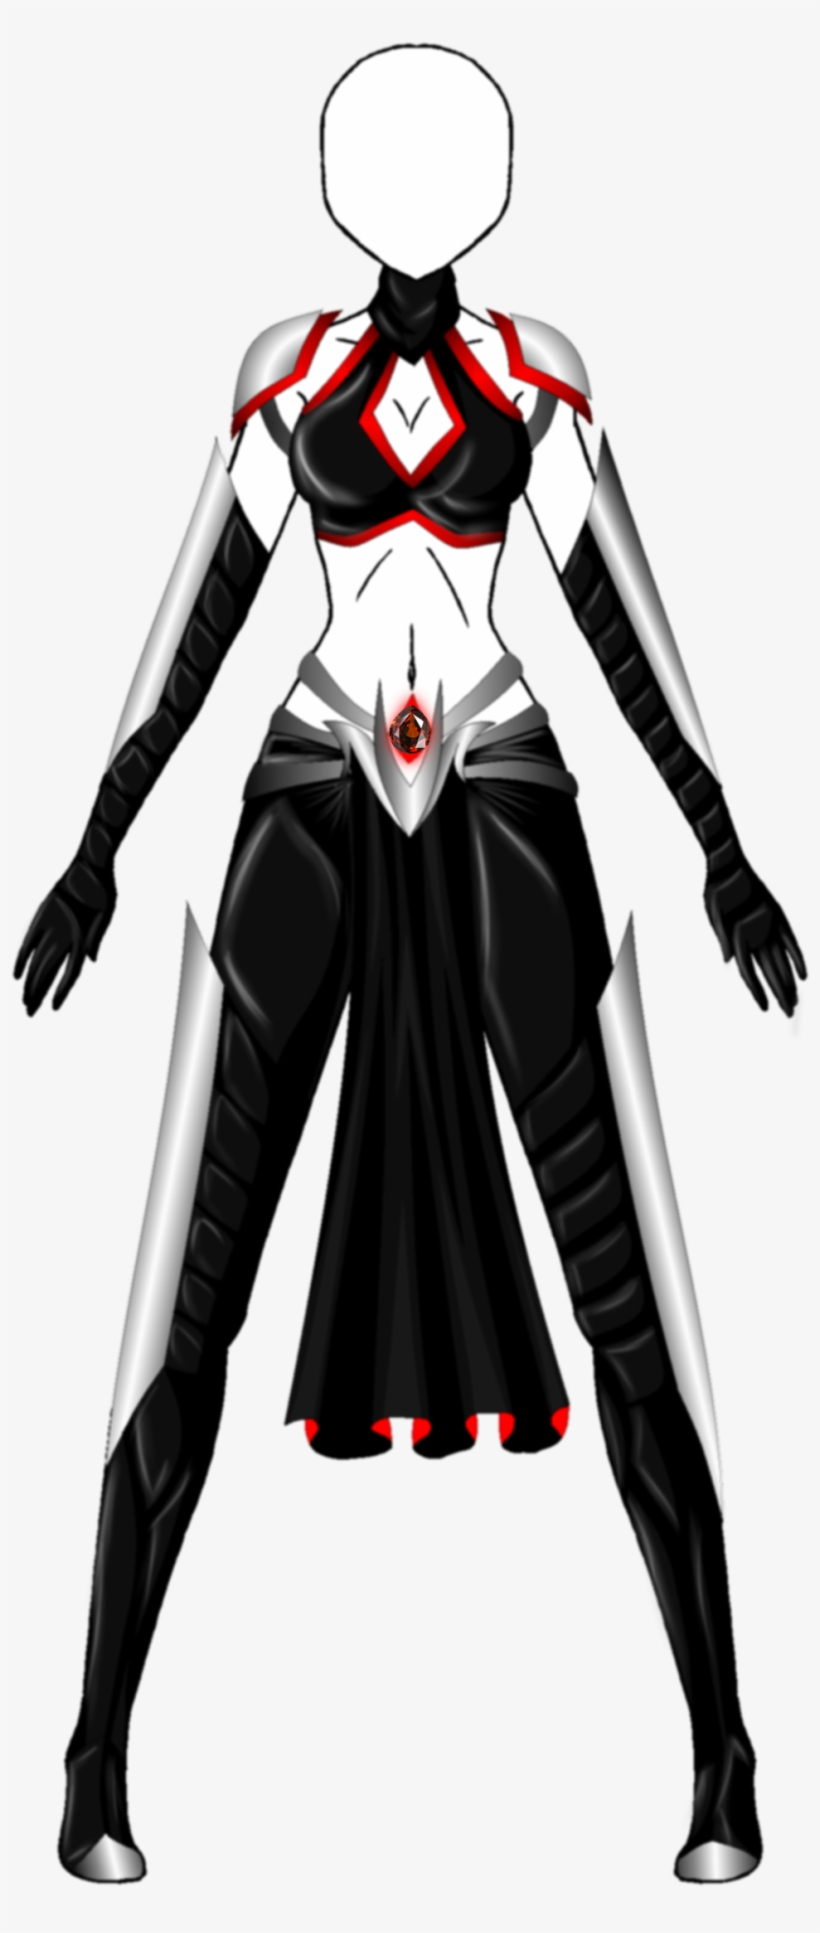 Robes Drawing Assassin Png Black And White Download Anime Female Assassin Outfit Transparent Png 1024x2274 Free Download On Nicepng